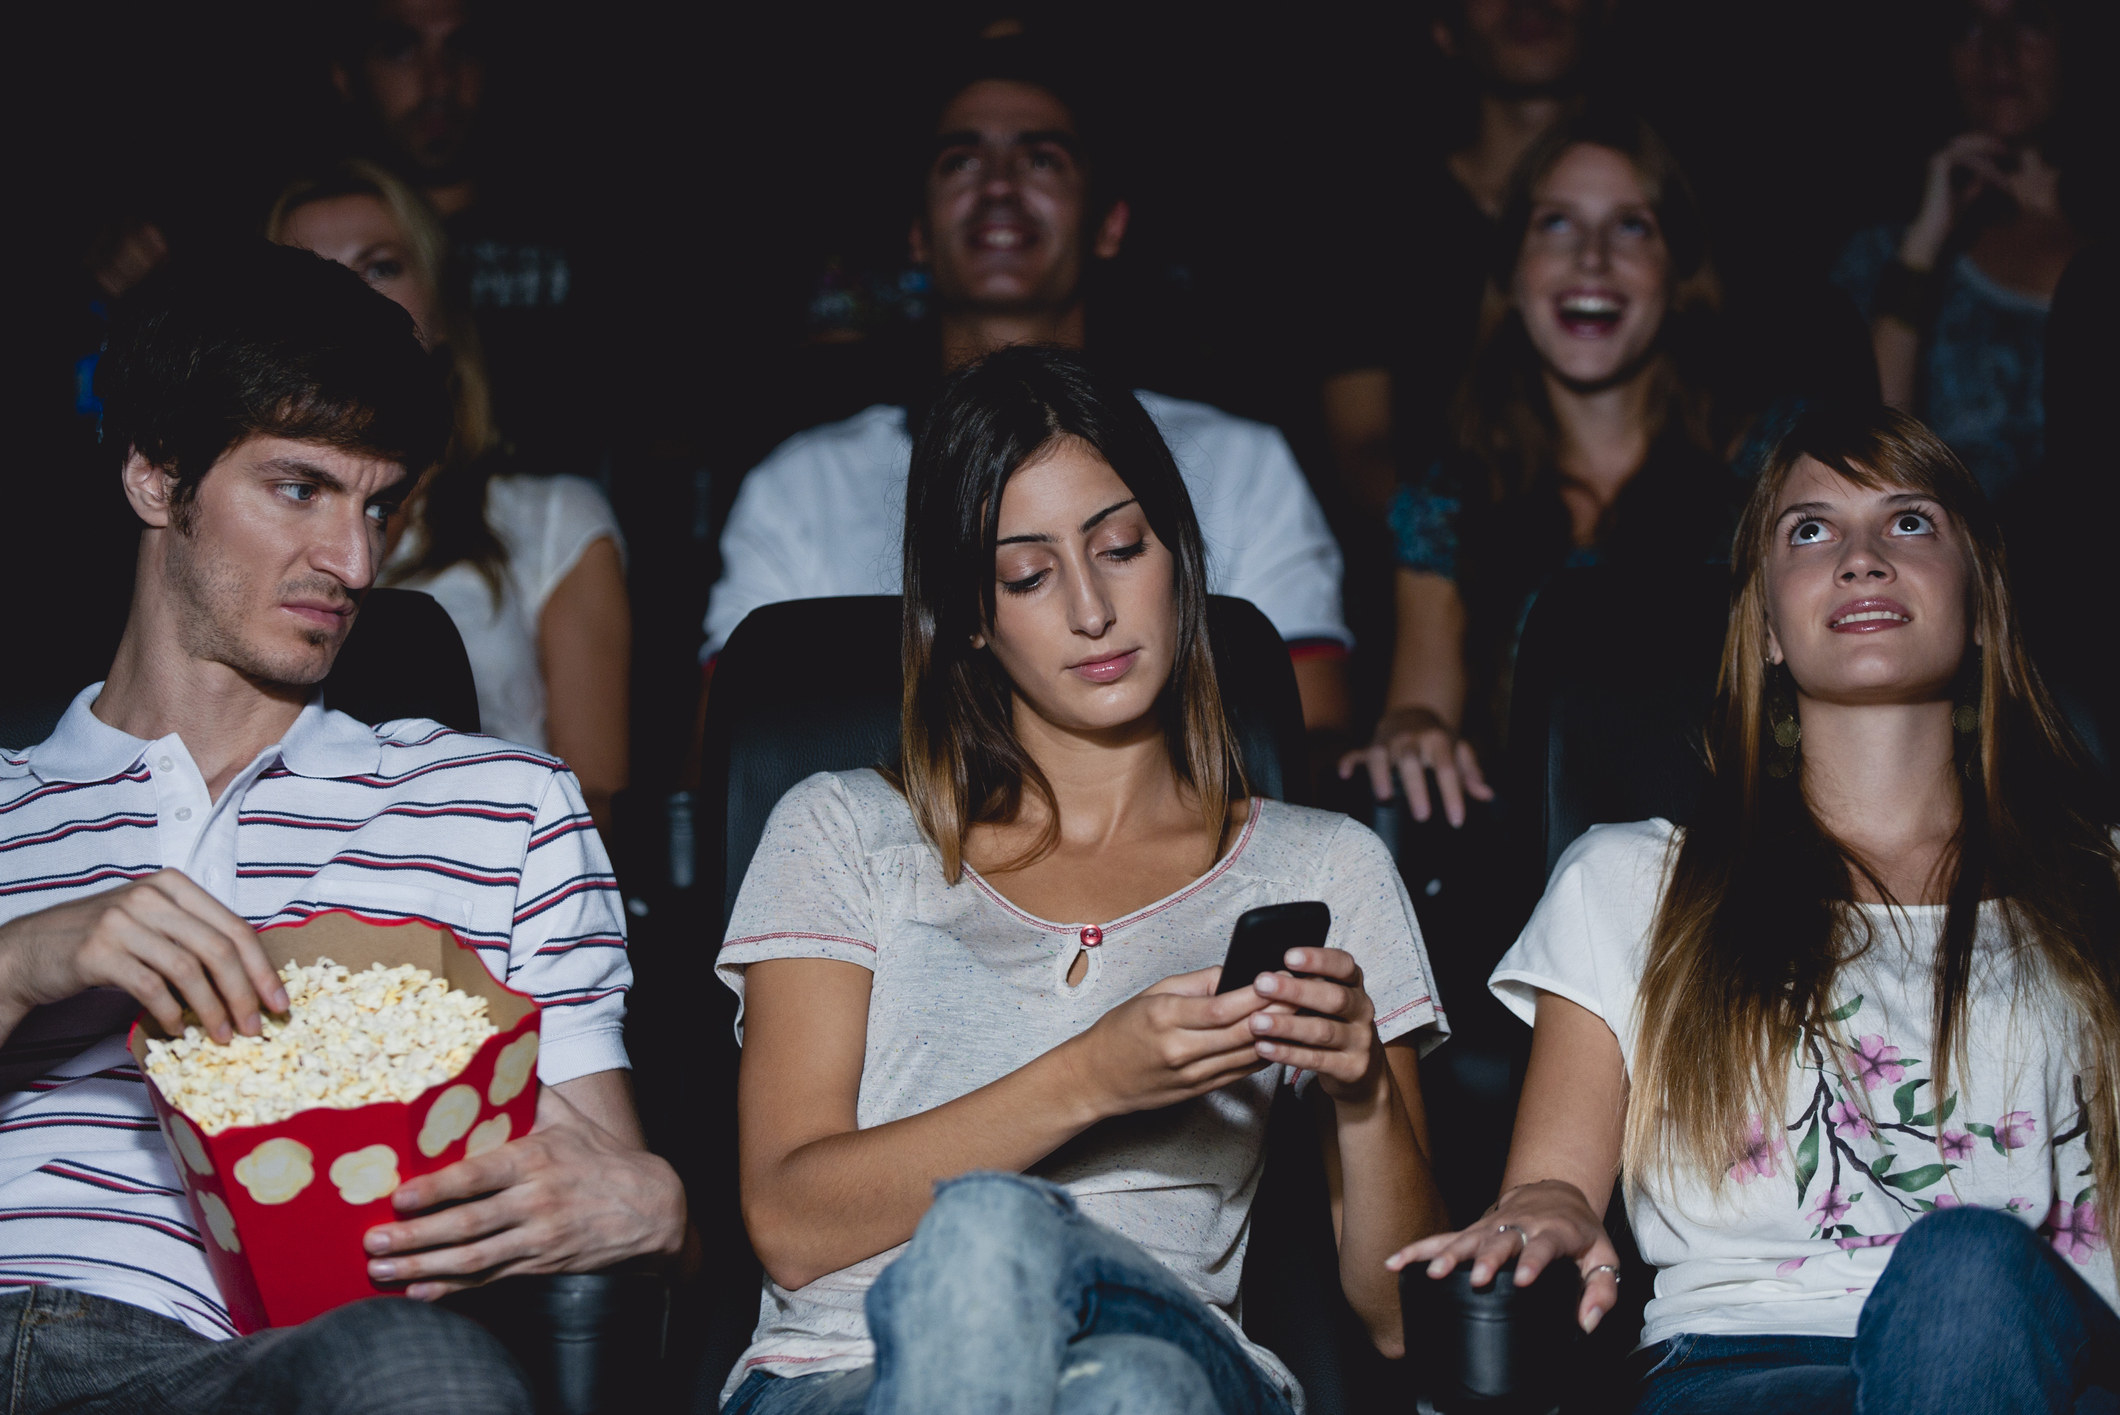 woman on her phone in a movie theater